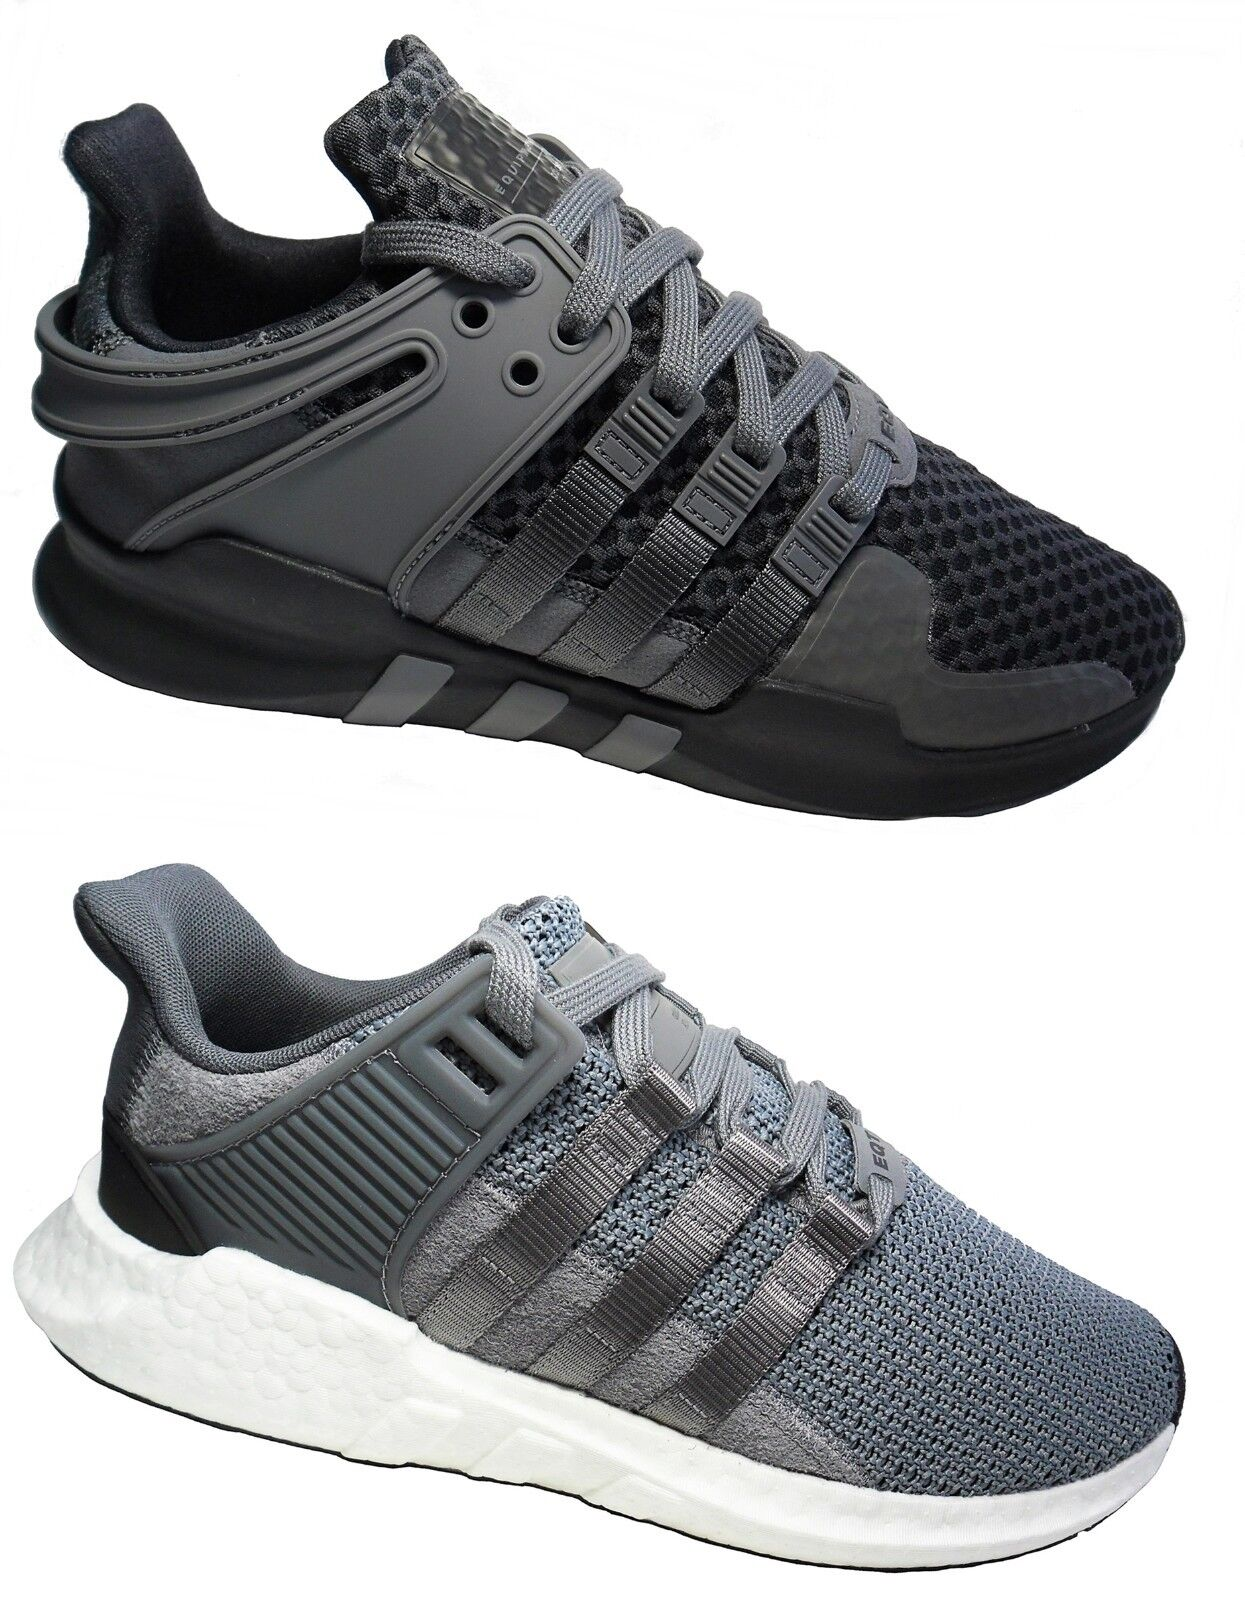 Herren Adidas Originals EQT Equipment Support New Adv Advance Trainers New Support Größe 7-12.5 fa3ab3